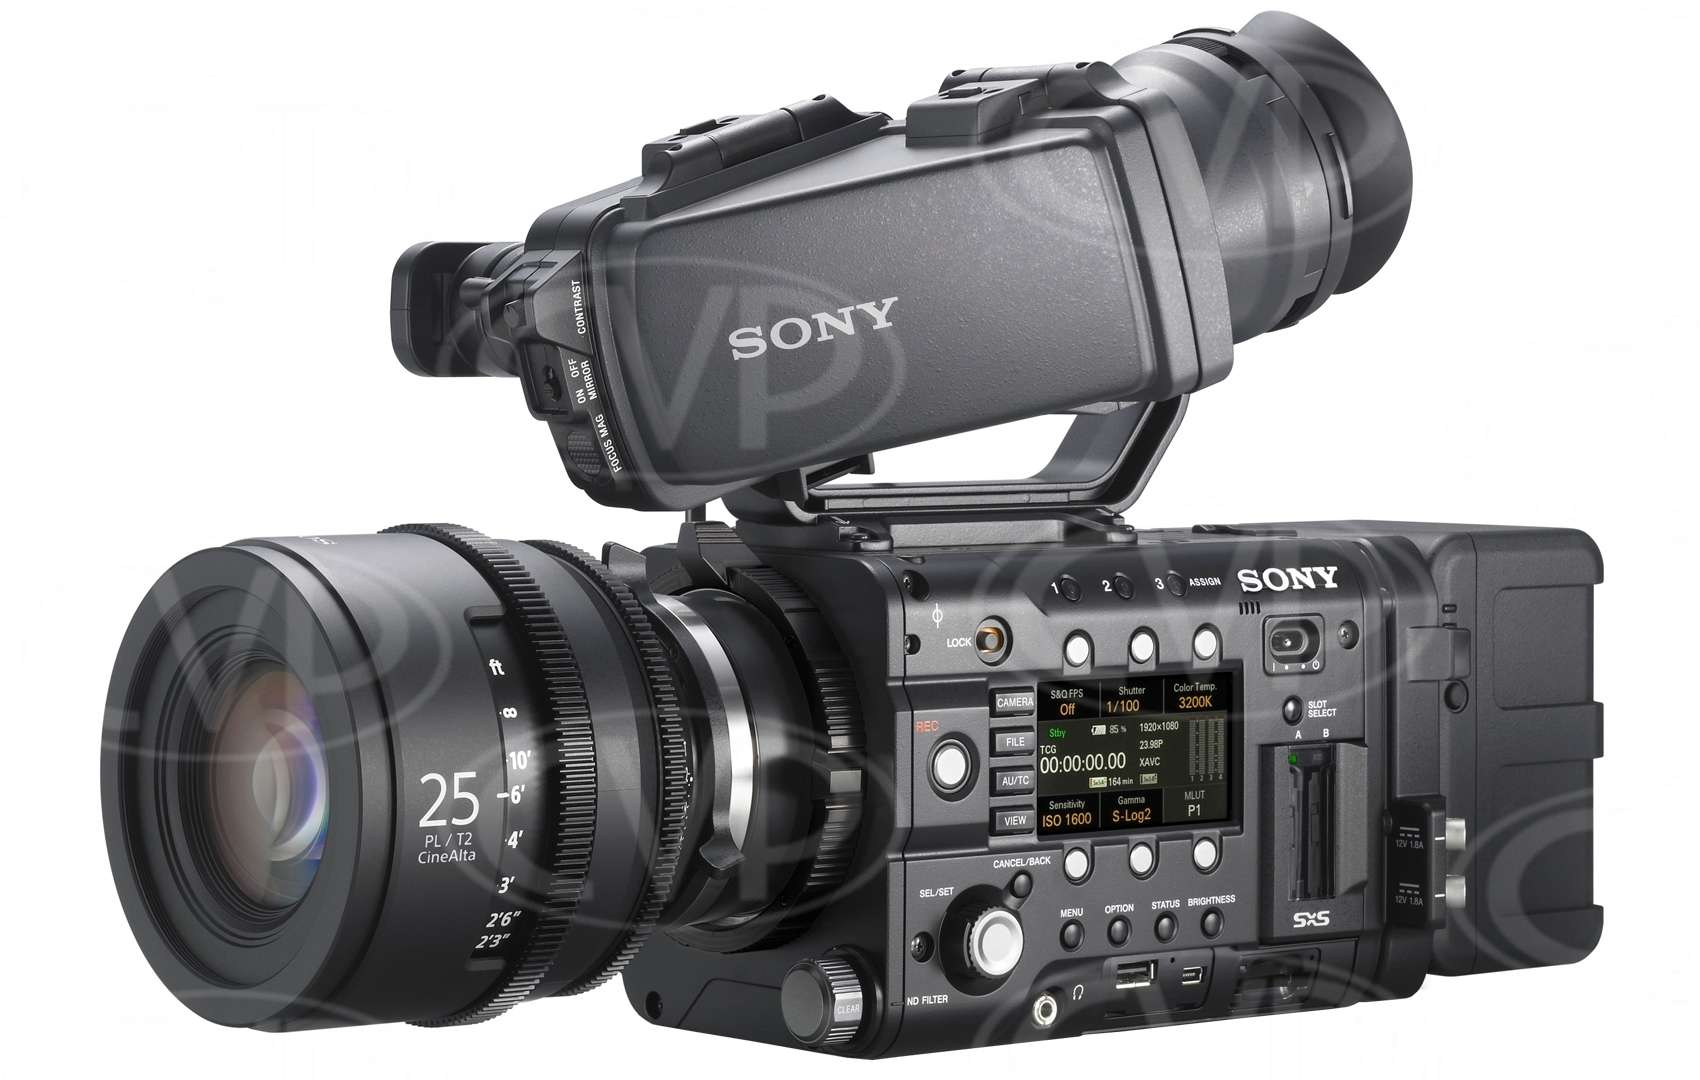 Sony PMW-F5 (PMWF5) Super 35mm Full HD 4K CMOS Sensor Compact CineAlta Camcorder - Records HD/2K on SxS memory plus 16-bit RAW 2K/4K output